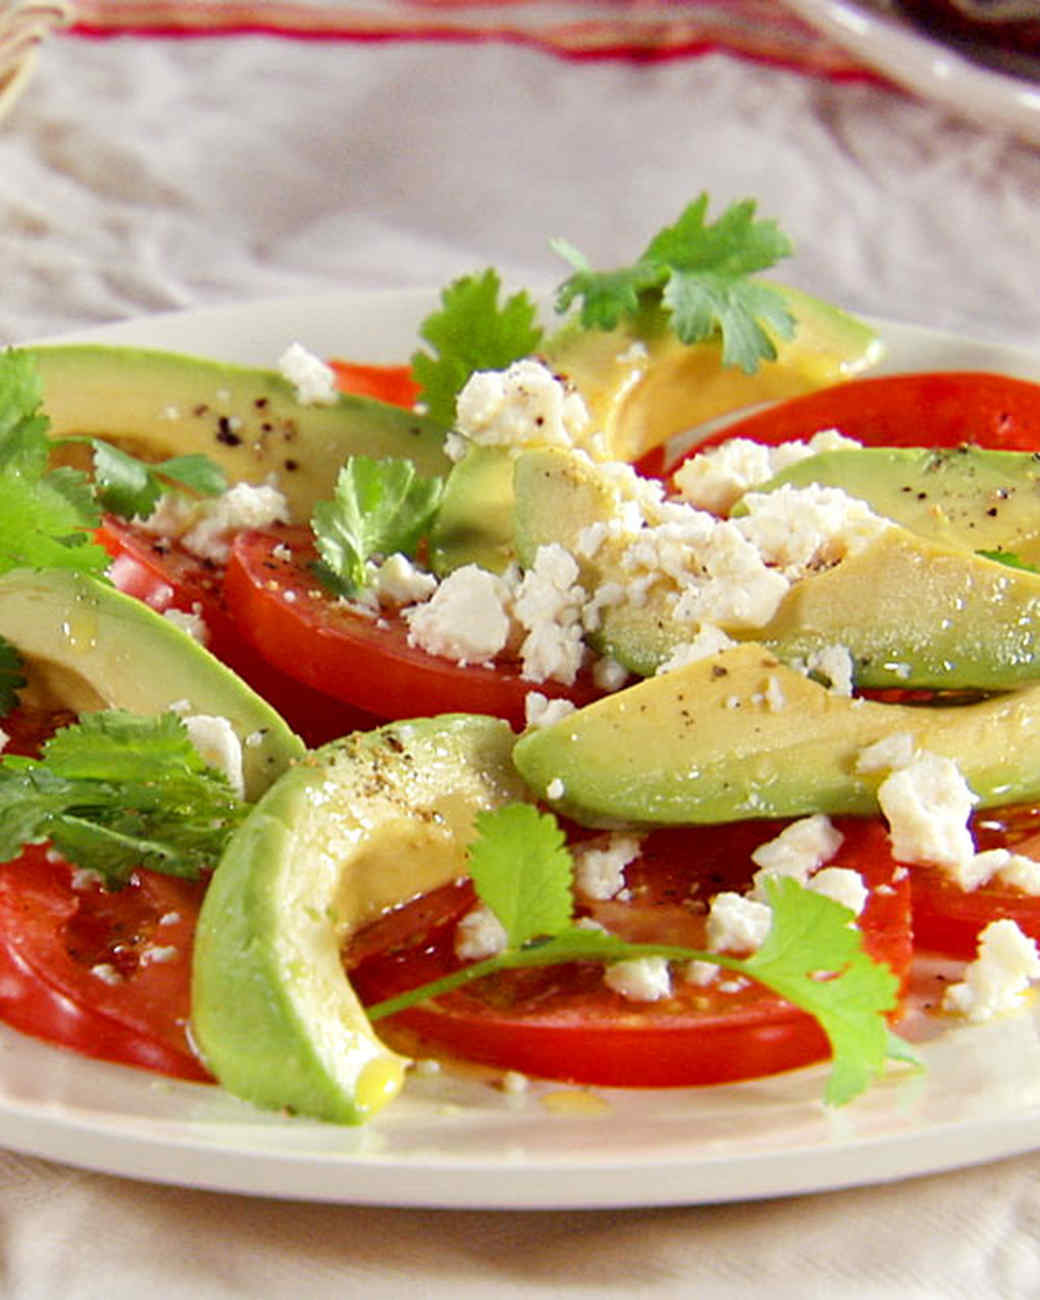 mh_1073_mexican_tomato_salad.jpg